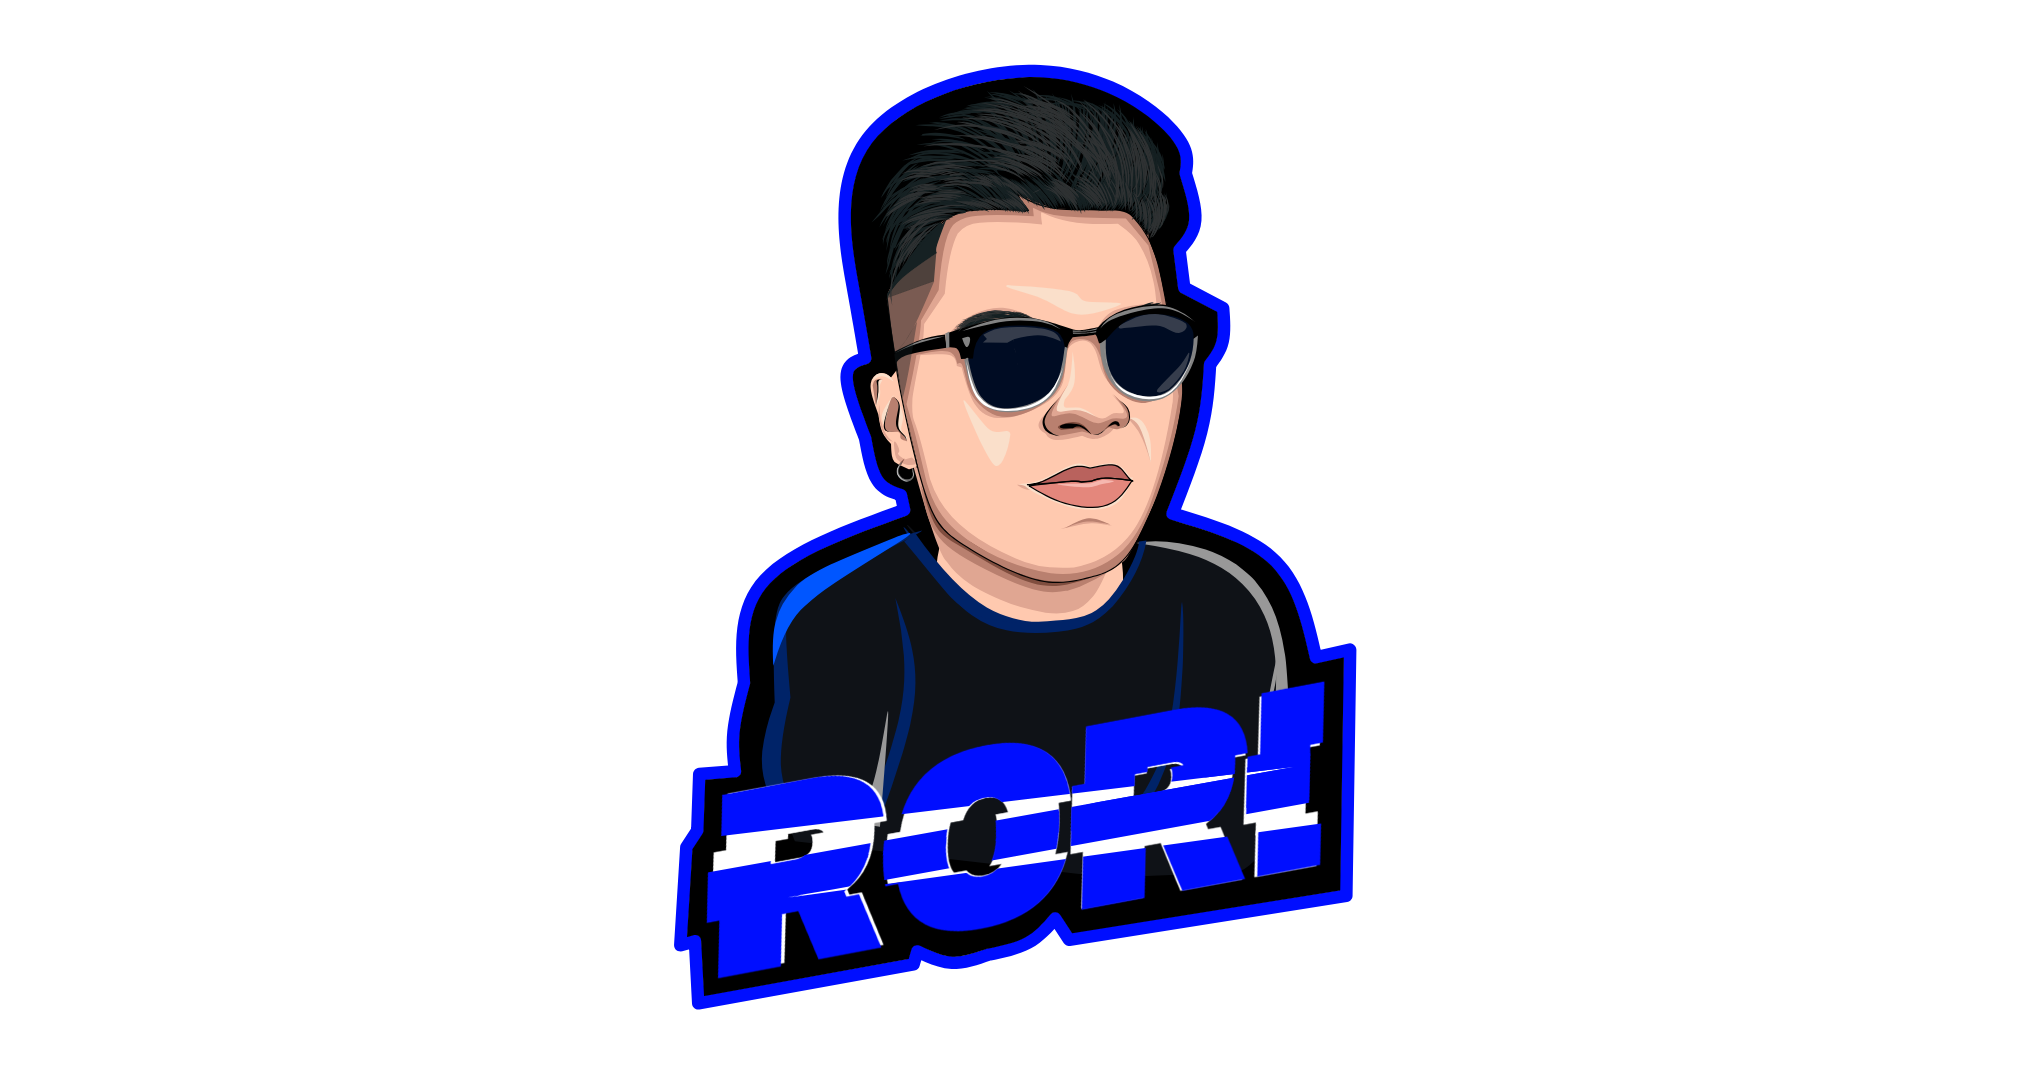 i will make cartoon twitch emote, sub badges, avatar esport for $40